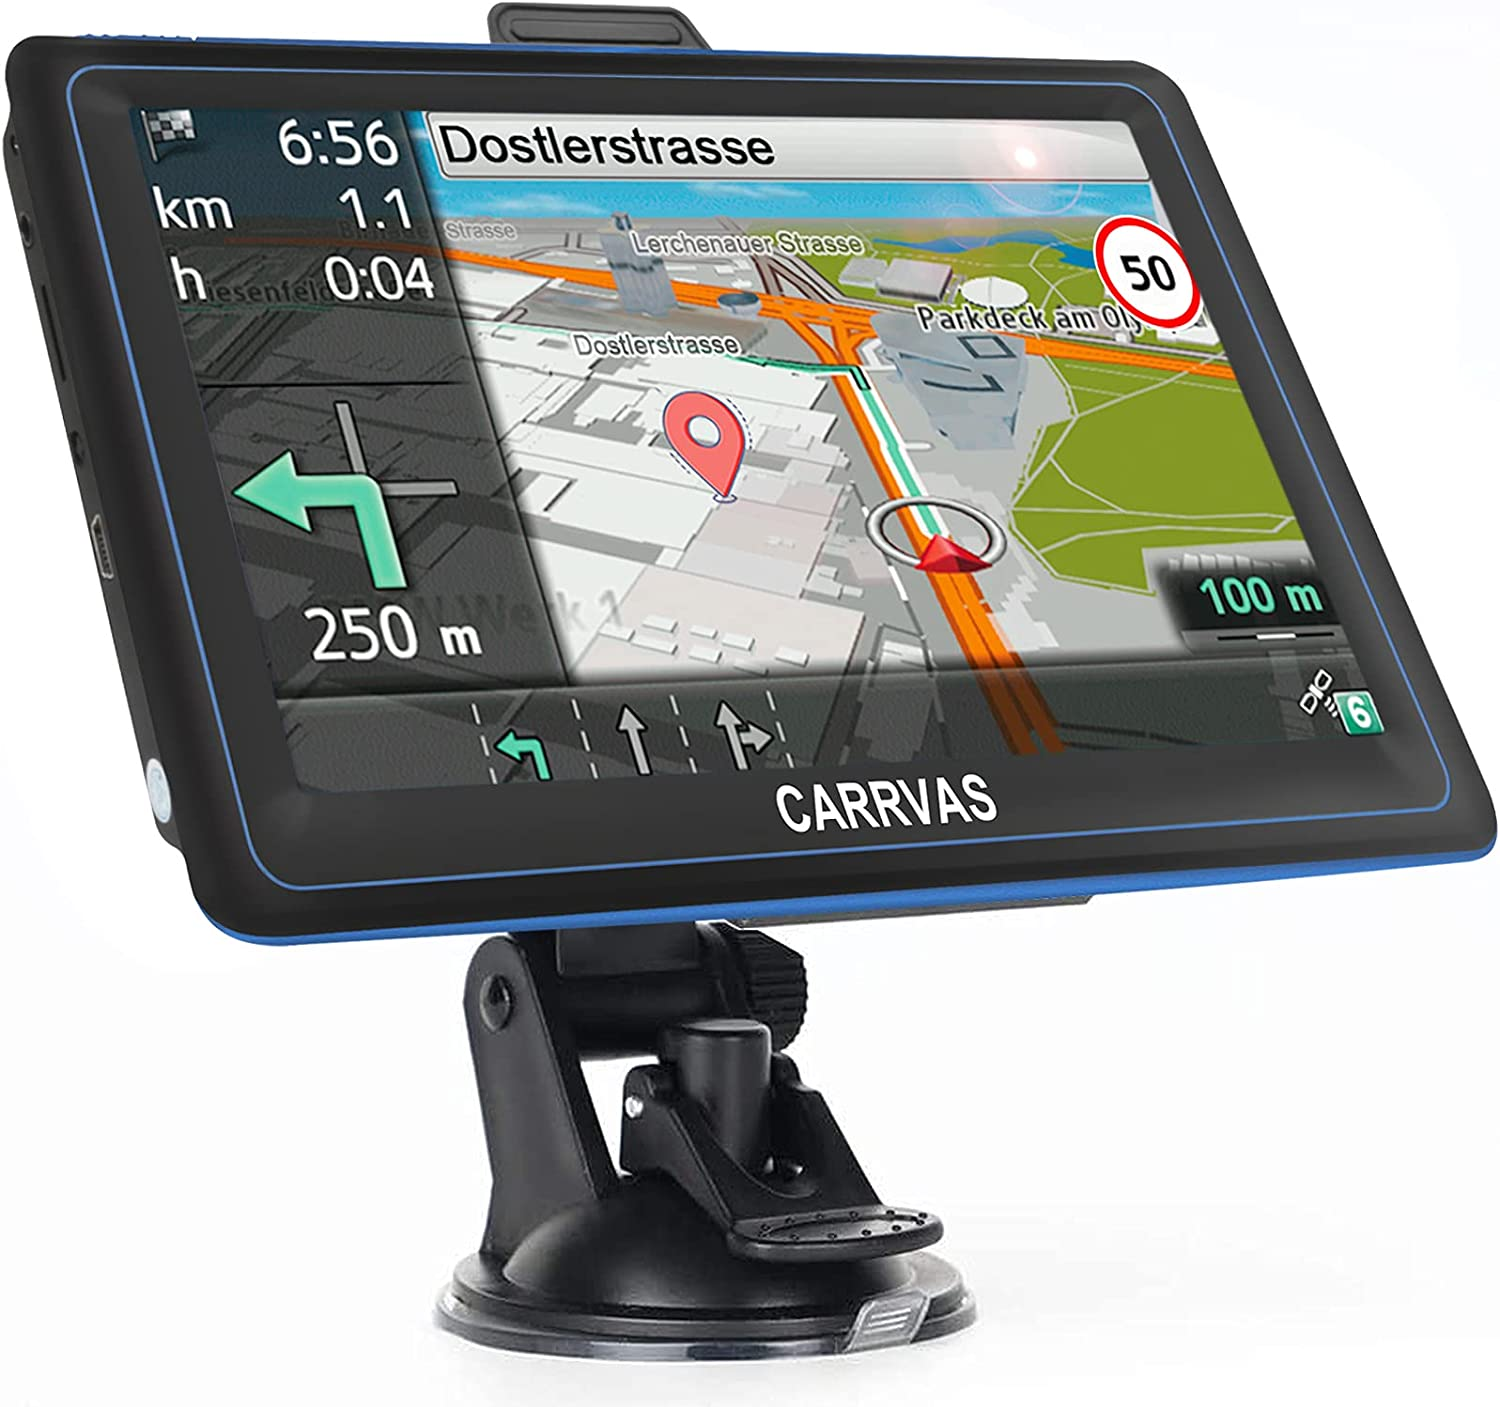 CARRVAS GPS Navigation for Car, Latest 2021 Map HD Touchscreen 7 Inch 8G 256M Broadcast Navigation System with Voice Guidance and Speed Camera Warning, Free Lifetime Maps Update of USA Europe